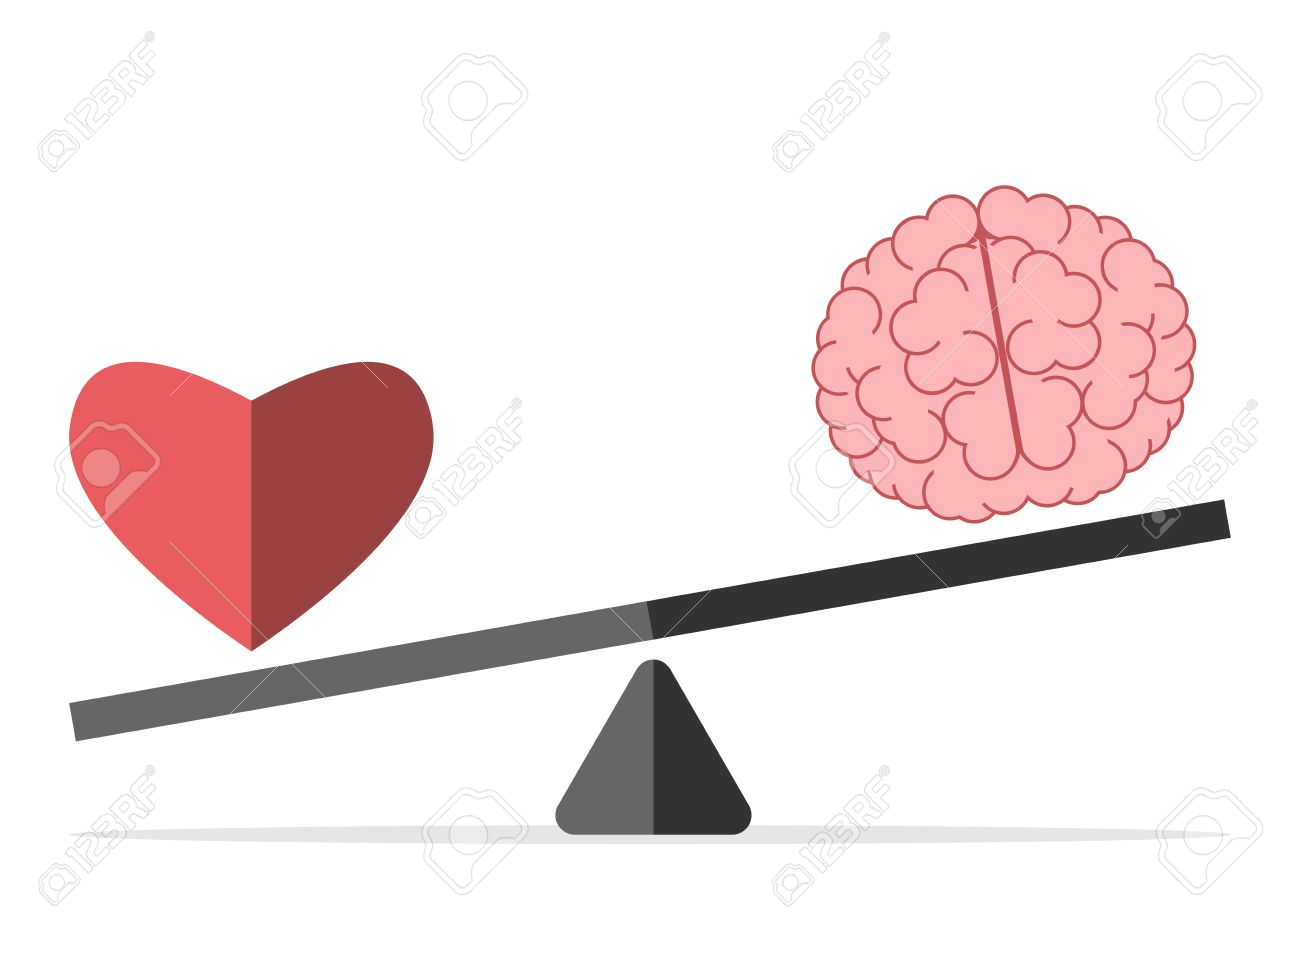 Heart and brain on scales isolated on white. Balance, love, mind, intelligence, logic, intelligent, emotion and choice concept. - 56597817